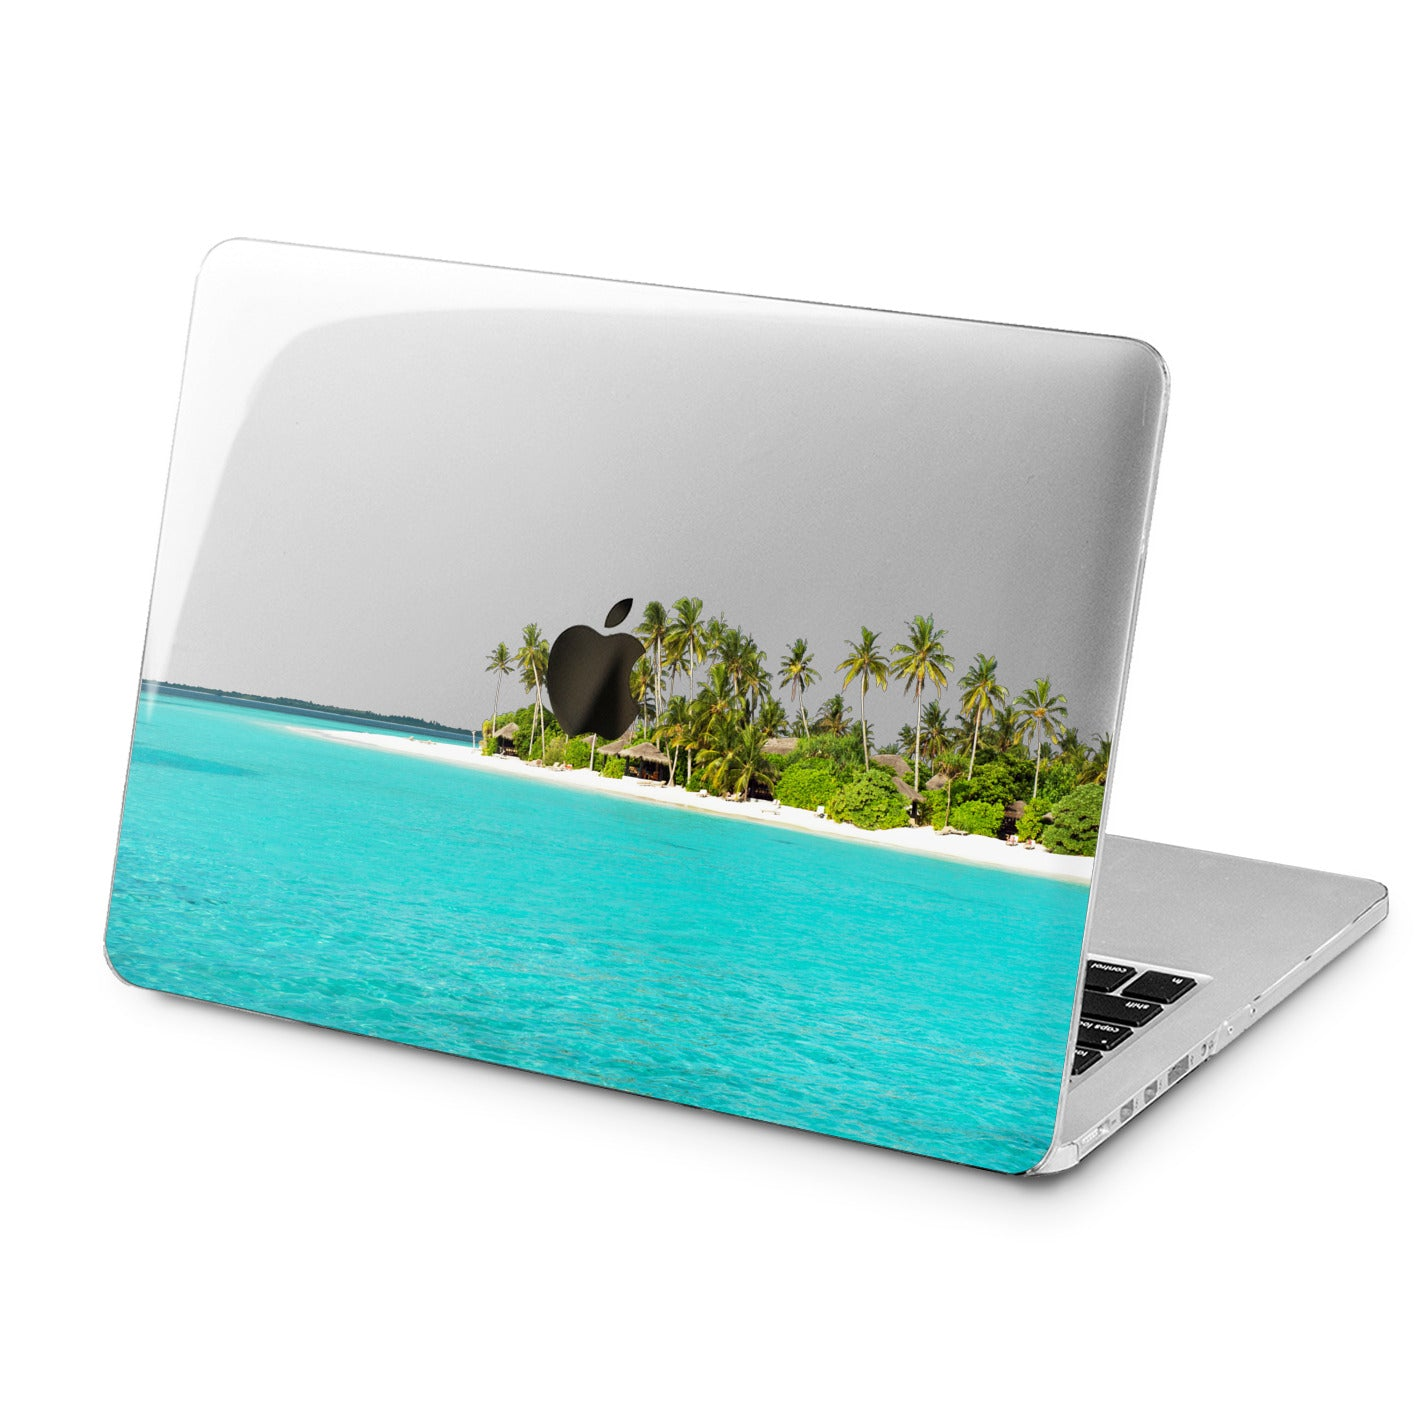 Lex Altern Lex Altern Palms Beach Case for your Laptop Apple Macbook.